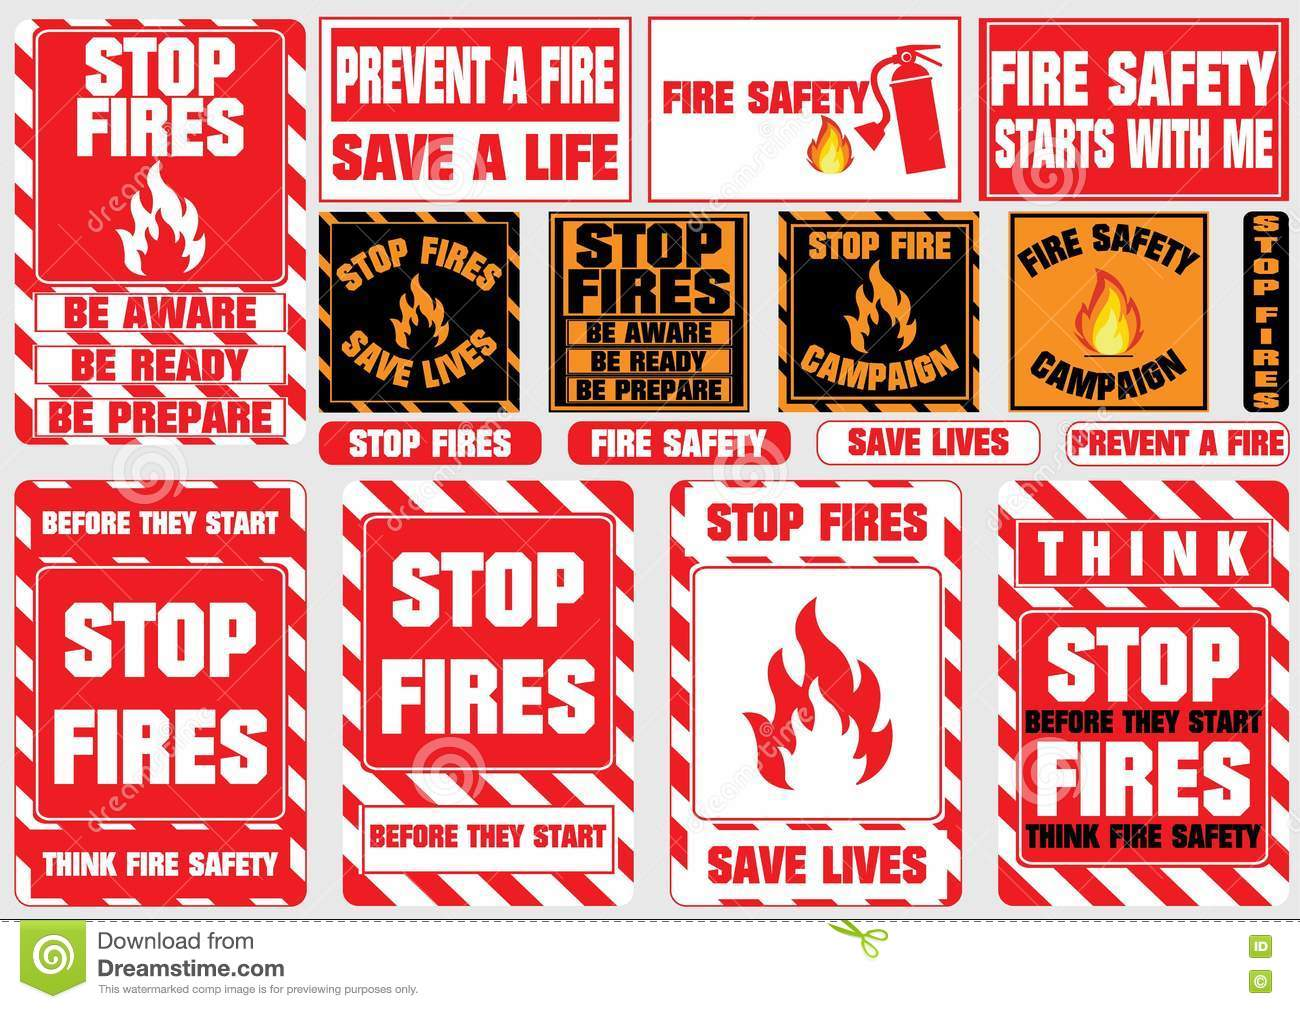 How can you prevent a fire or quickly deal with it 30